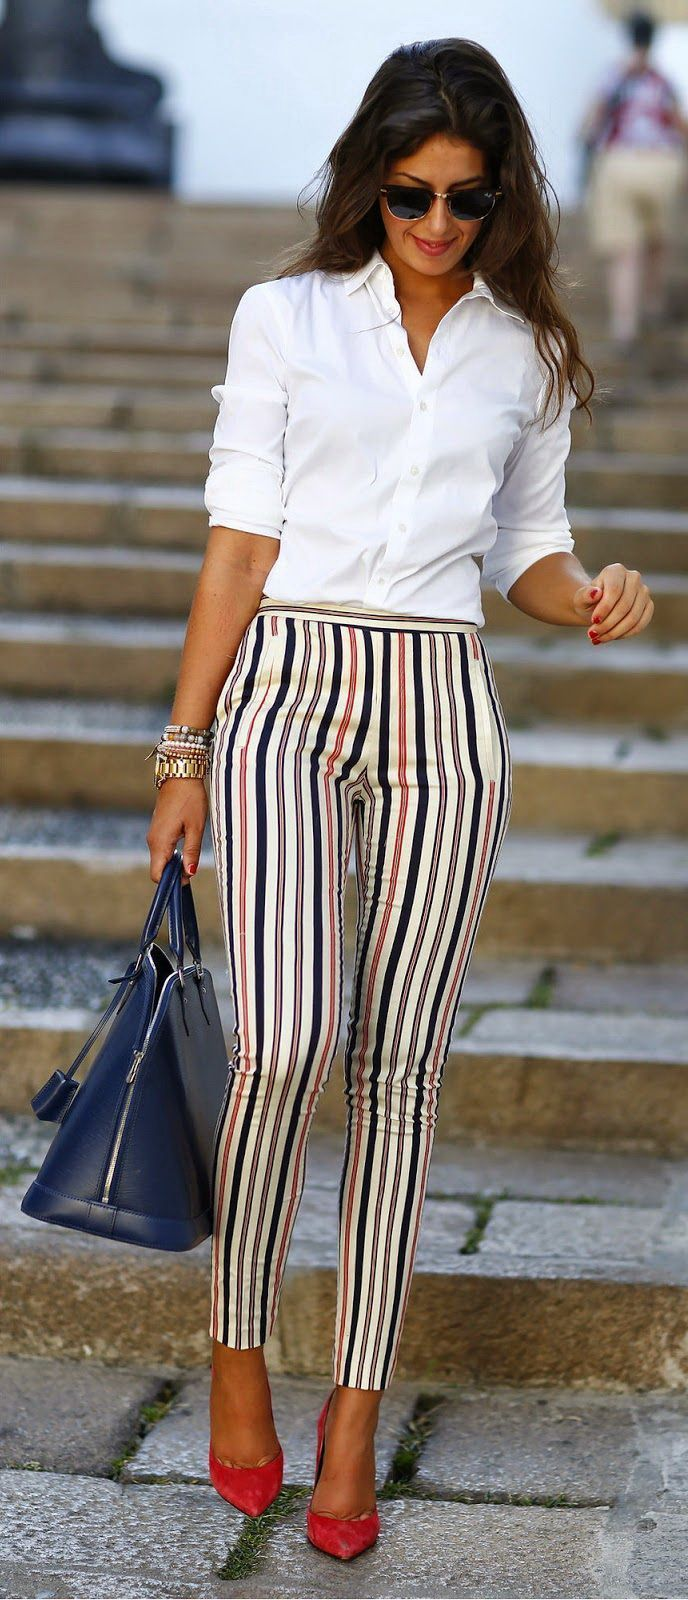 25+ best ideas about Stylish work outfits on Pinterest ...